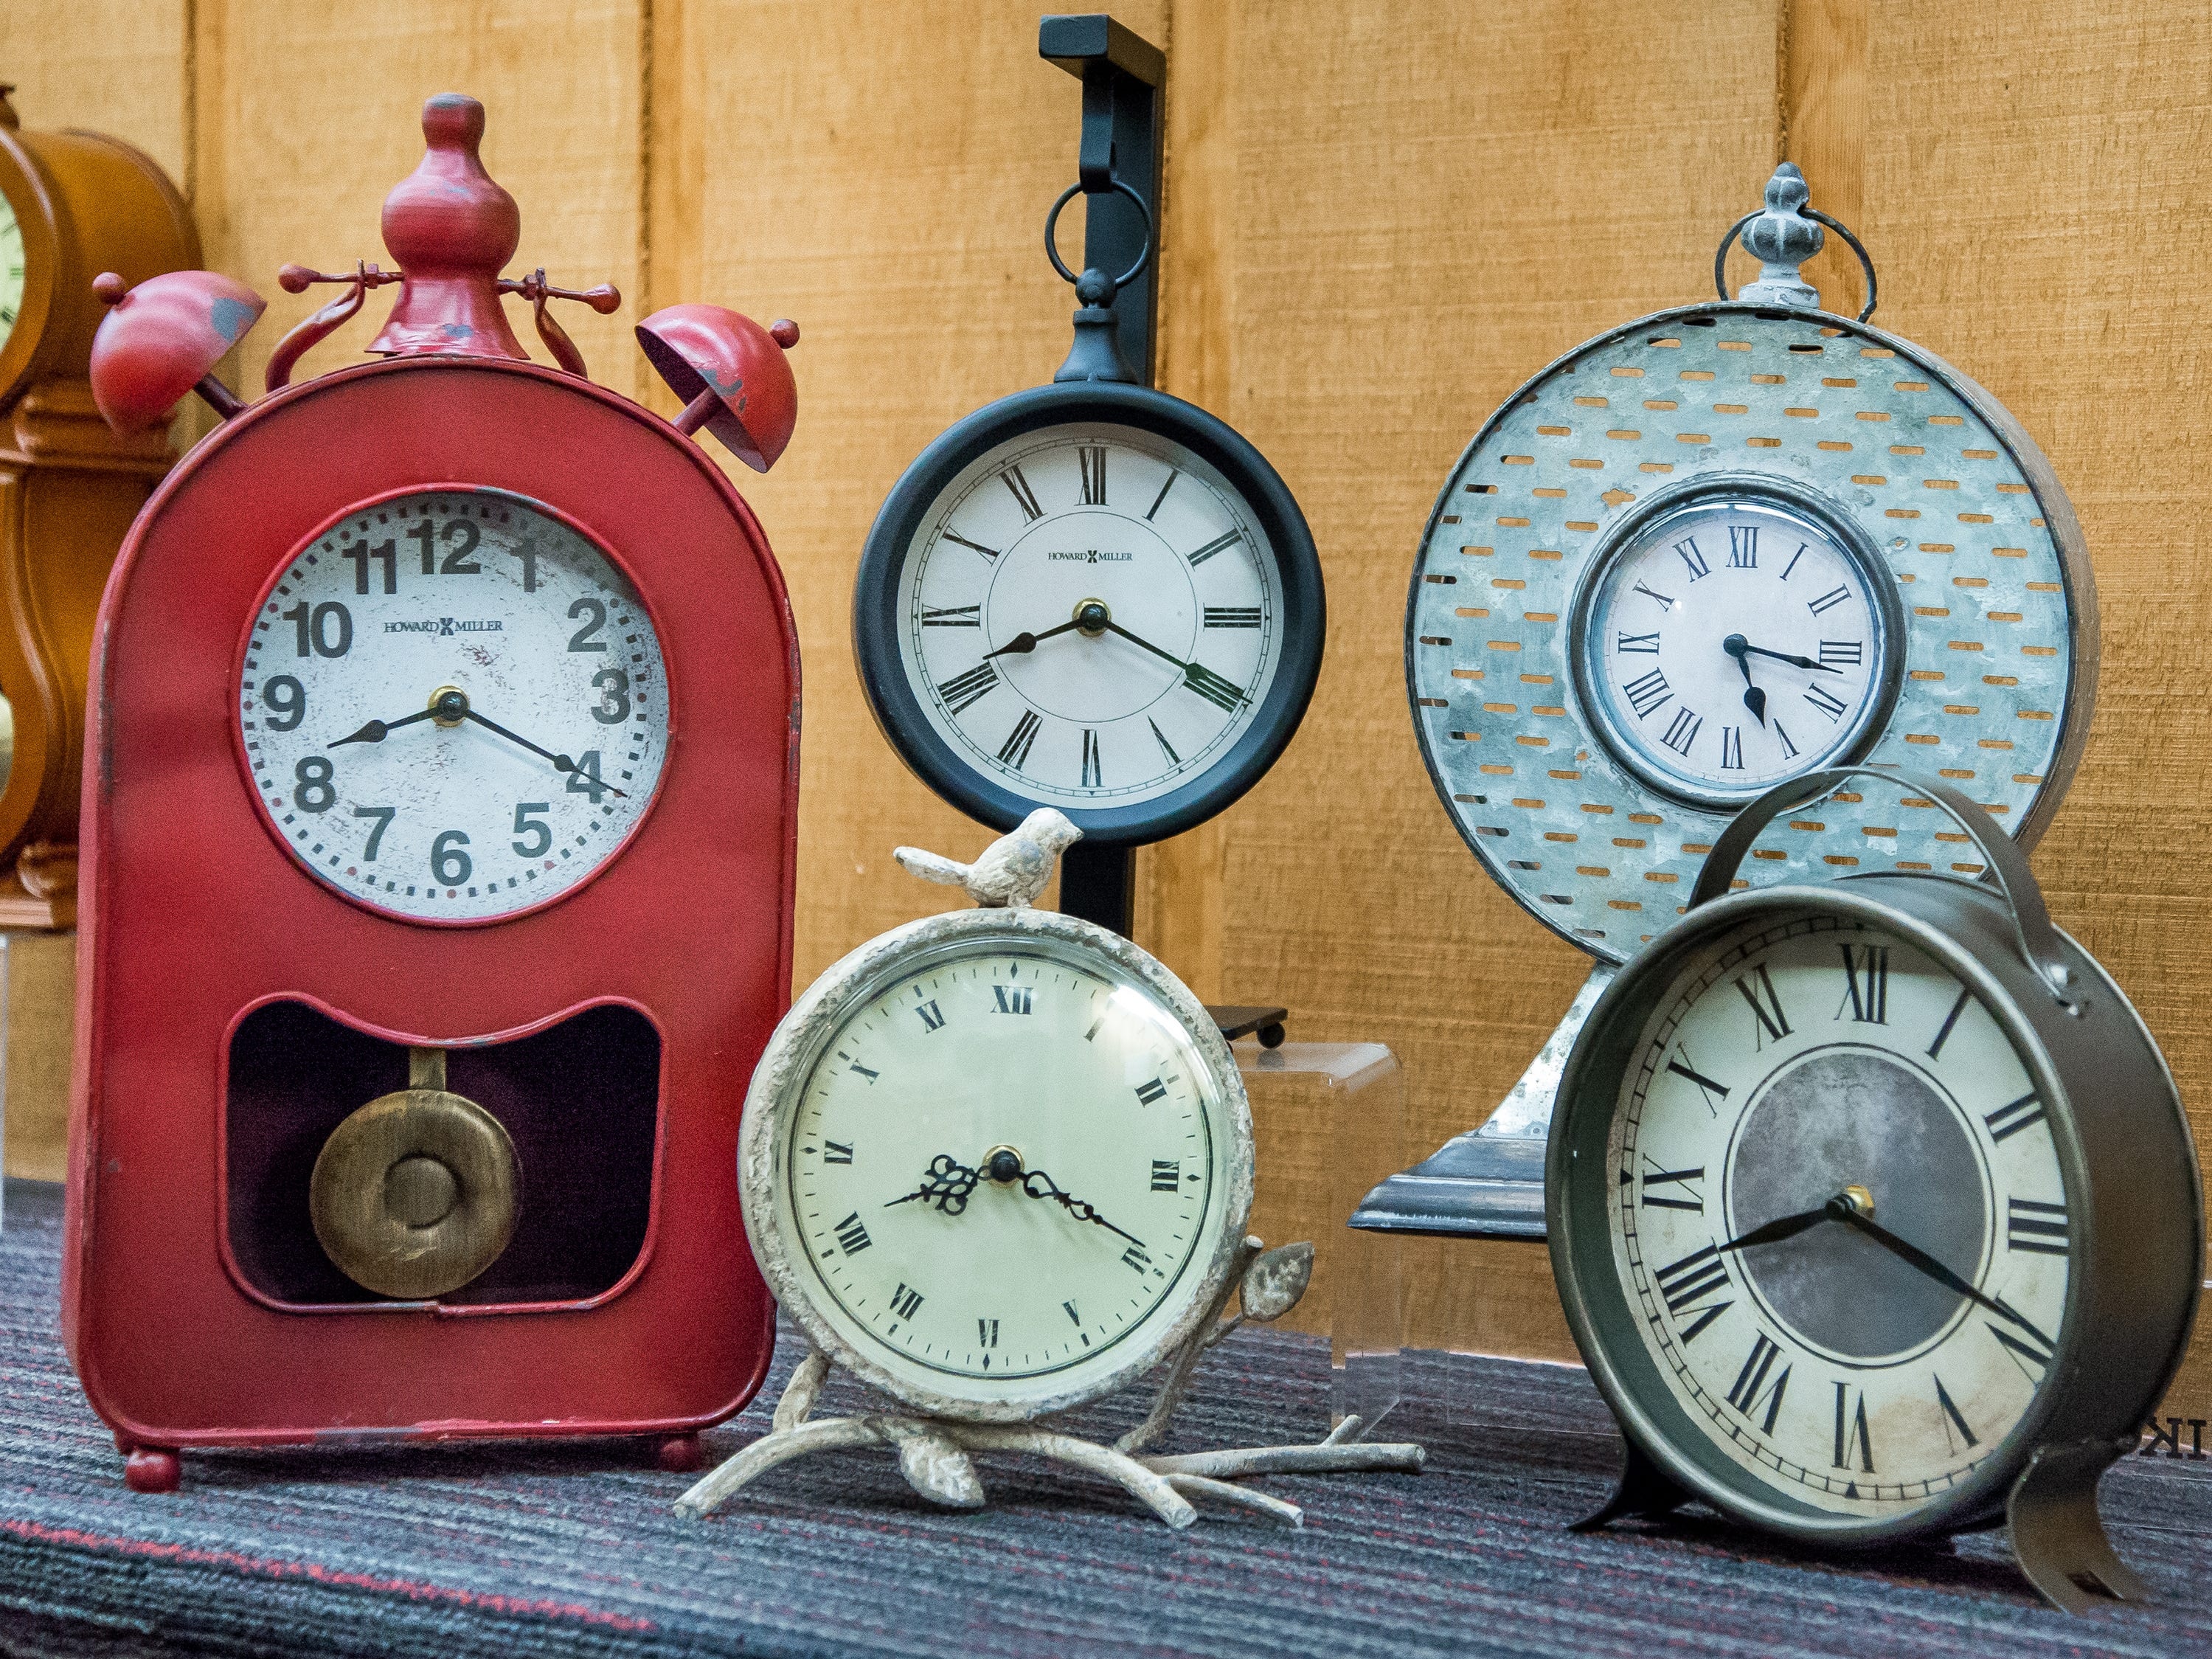 These industrial mantel clocks from the Little Swiss Clock Shop come in a variety of metals, range in height from 9 to 19 inches and sell for $49 To $139.